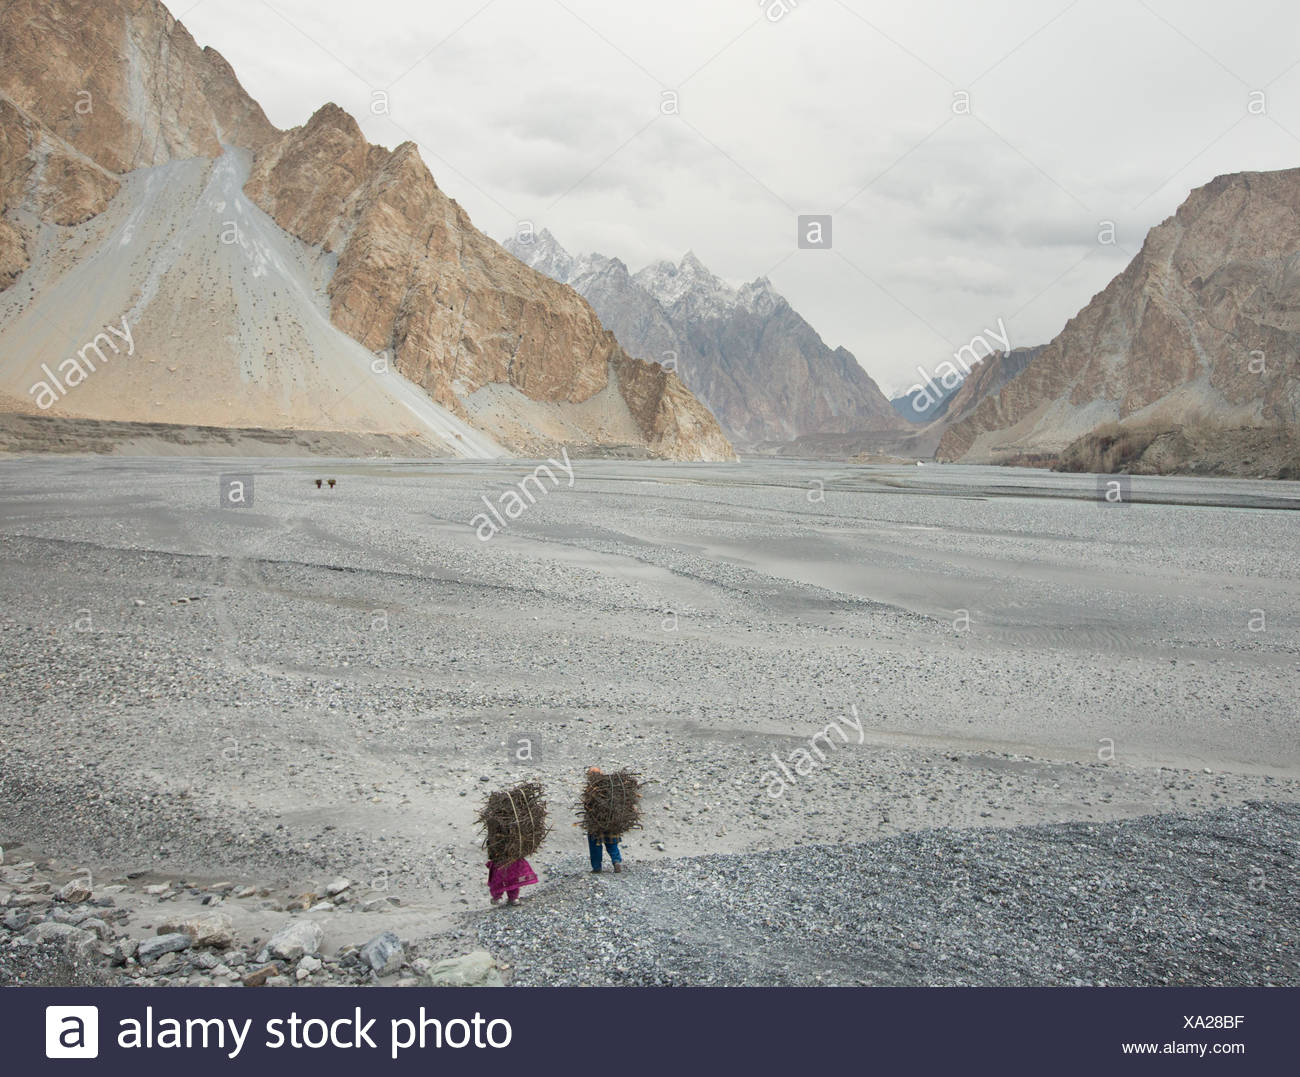 Women returning home after getting wood for cooking and heating, a two hour walk. - Stock Image